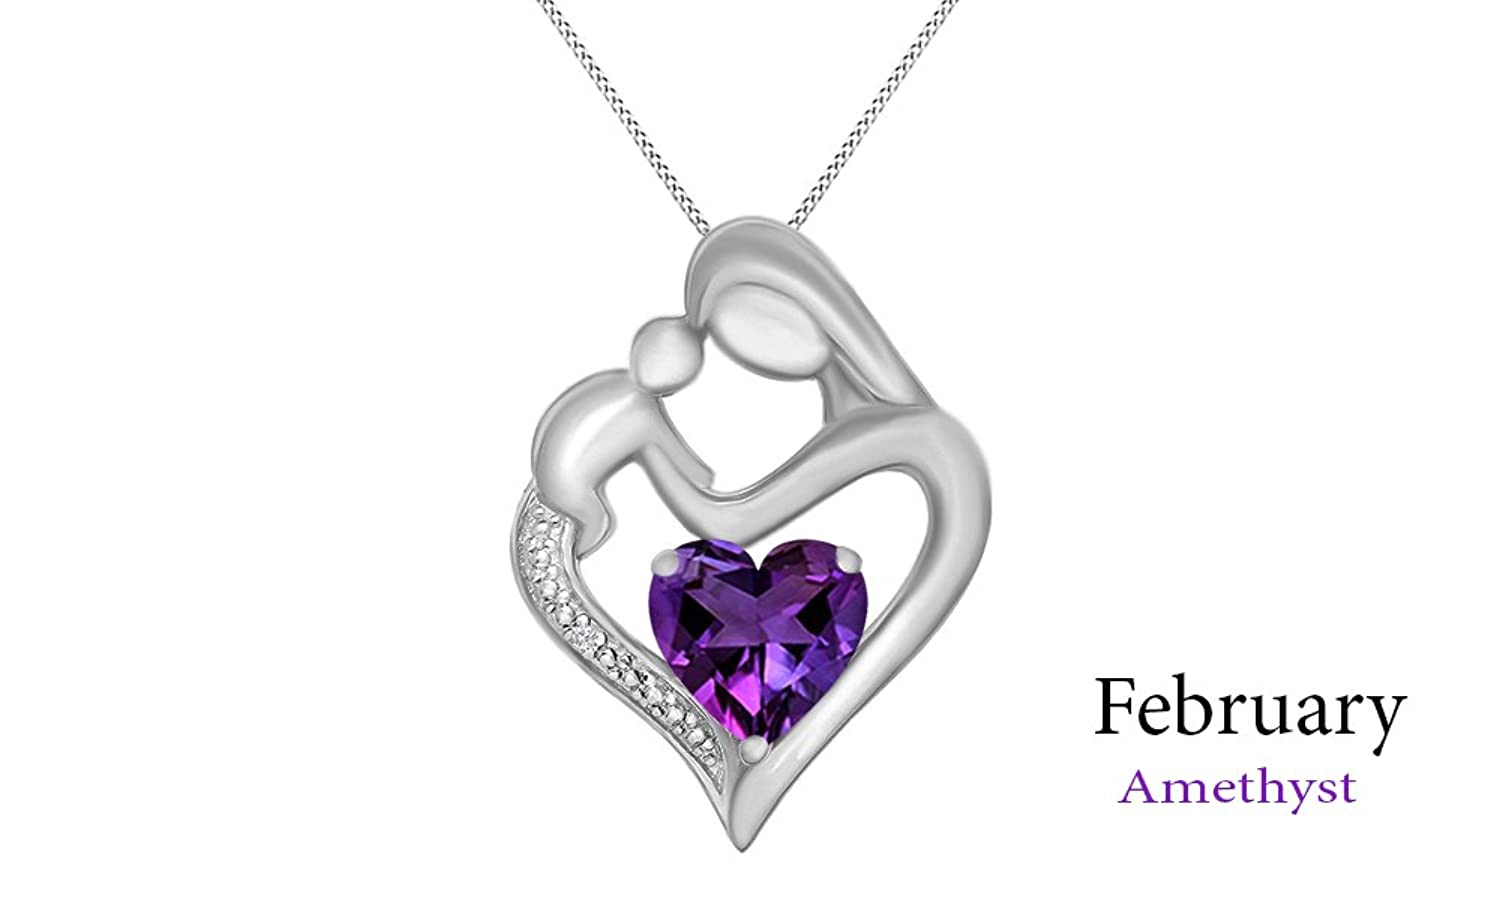 Amethyst the February Birthstone, White Natural Diamond Accent - Mother & Child Heart Pendant in 14k White Gold Over Sterling Silver